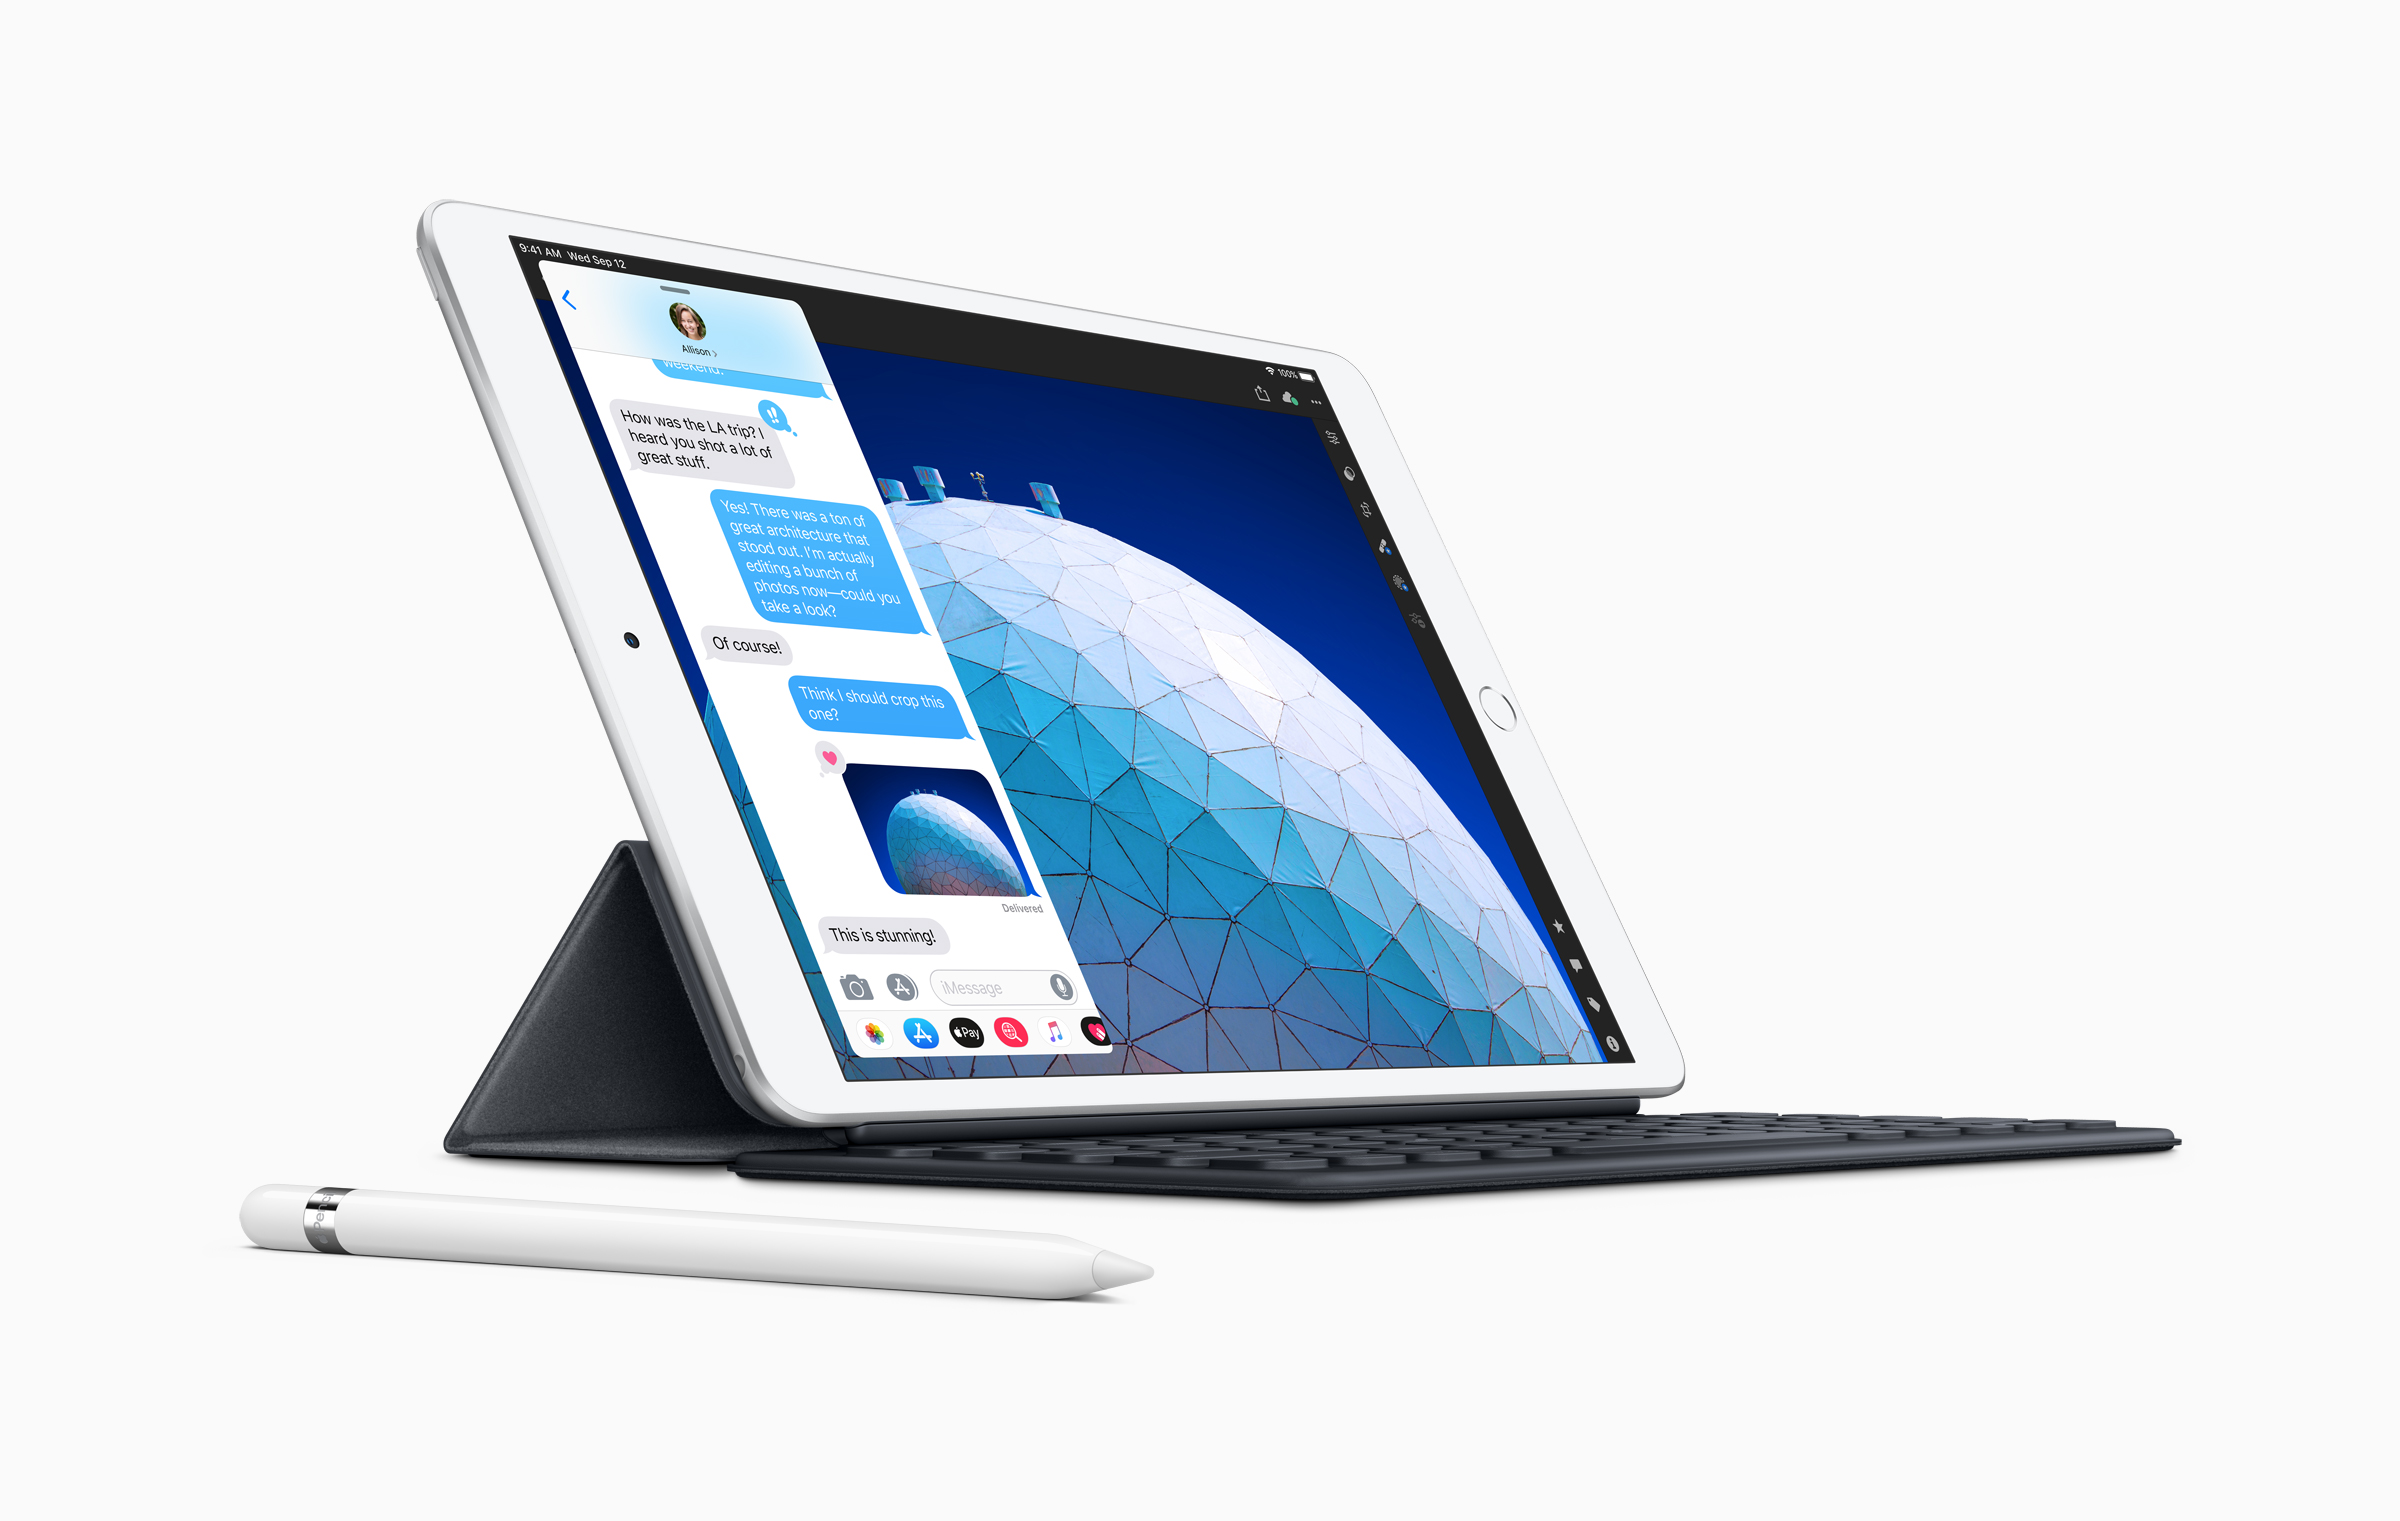 iPad Air with Keyboard and Stylus